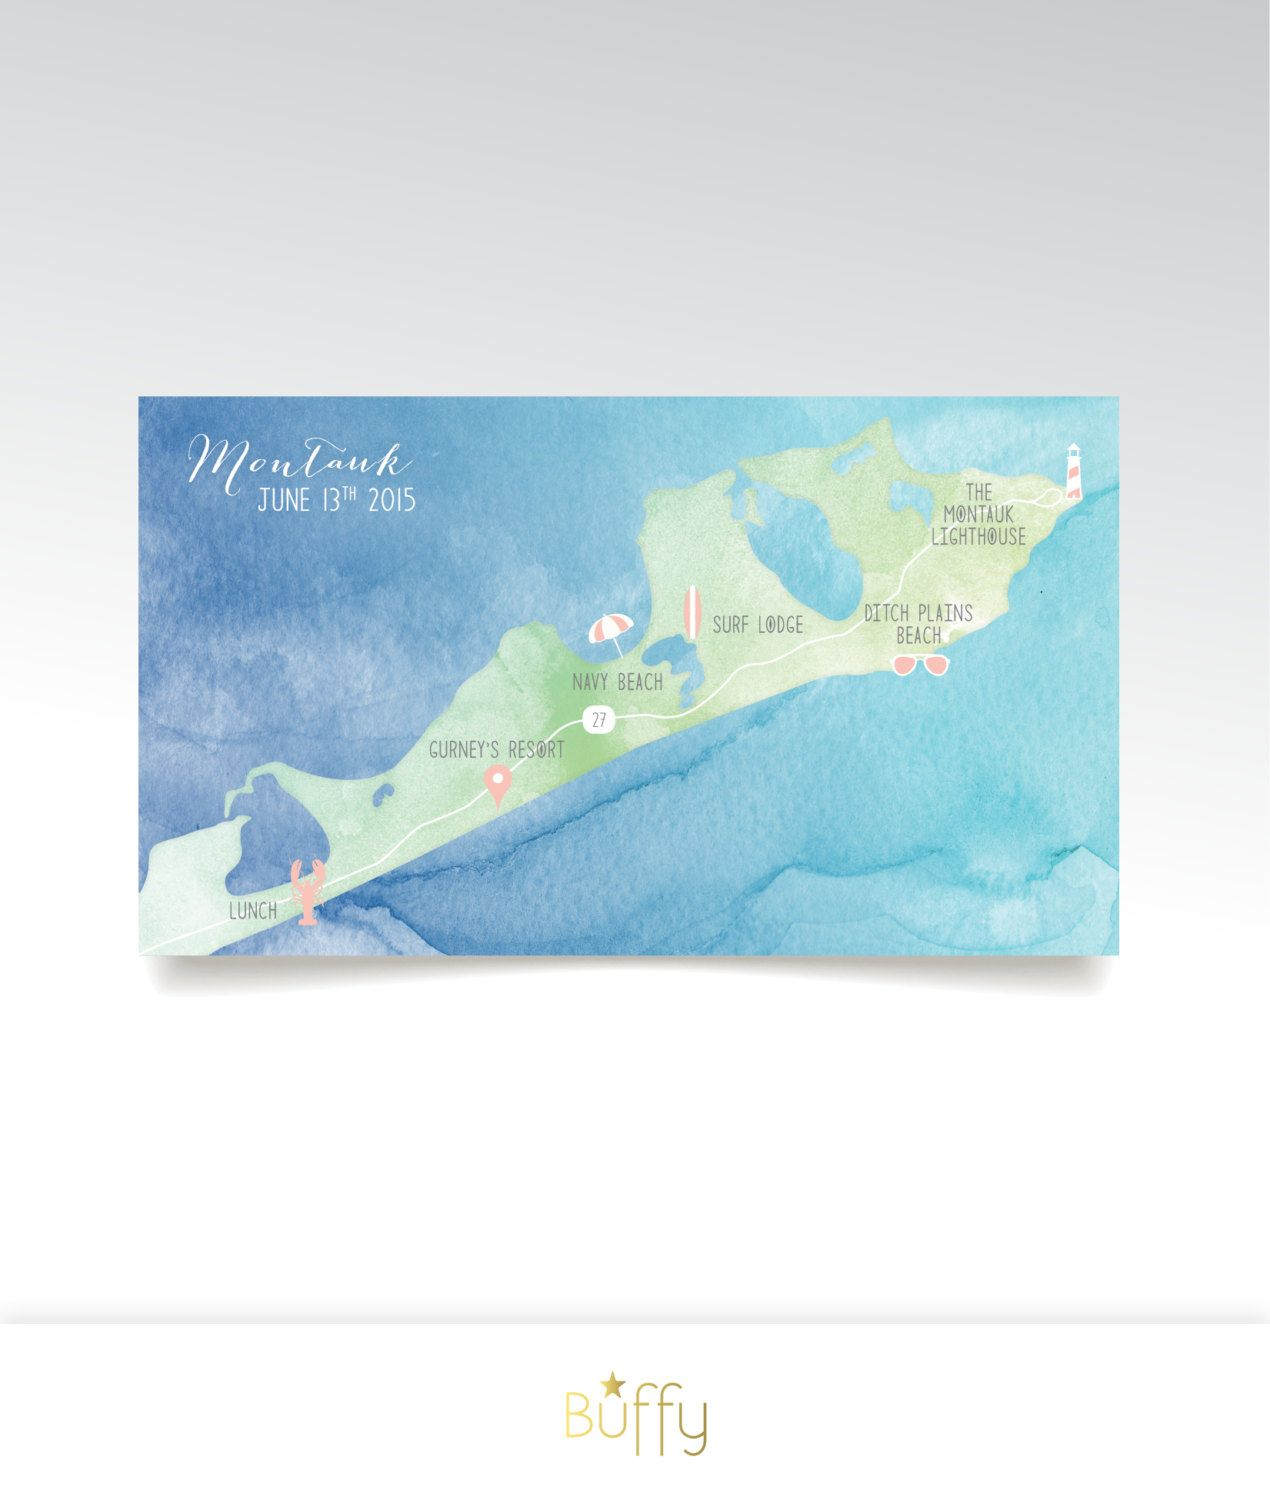 The Hamptons Map Free Printable Maps Maps Of Regional Projects - Maps directions google usa